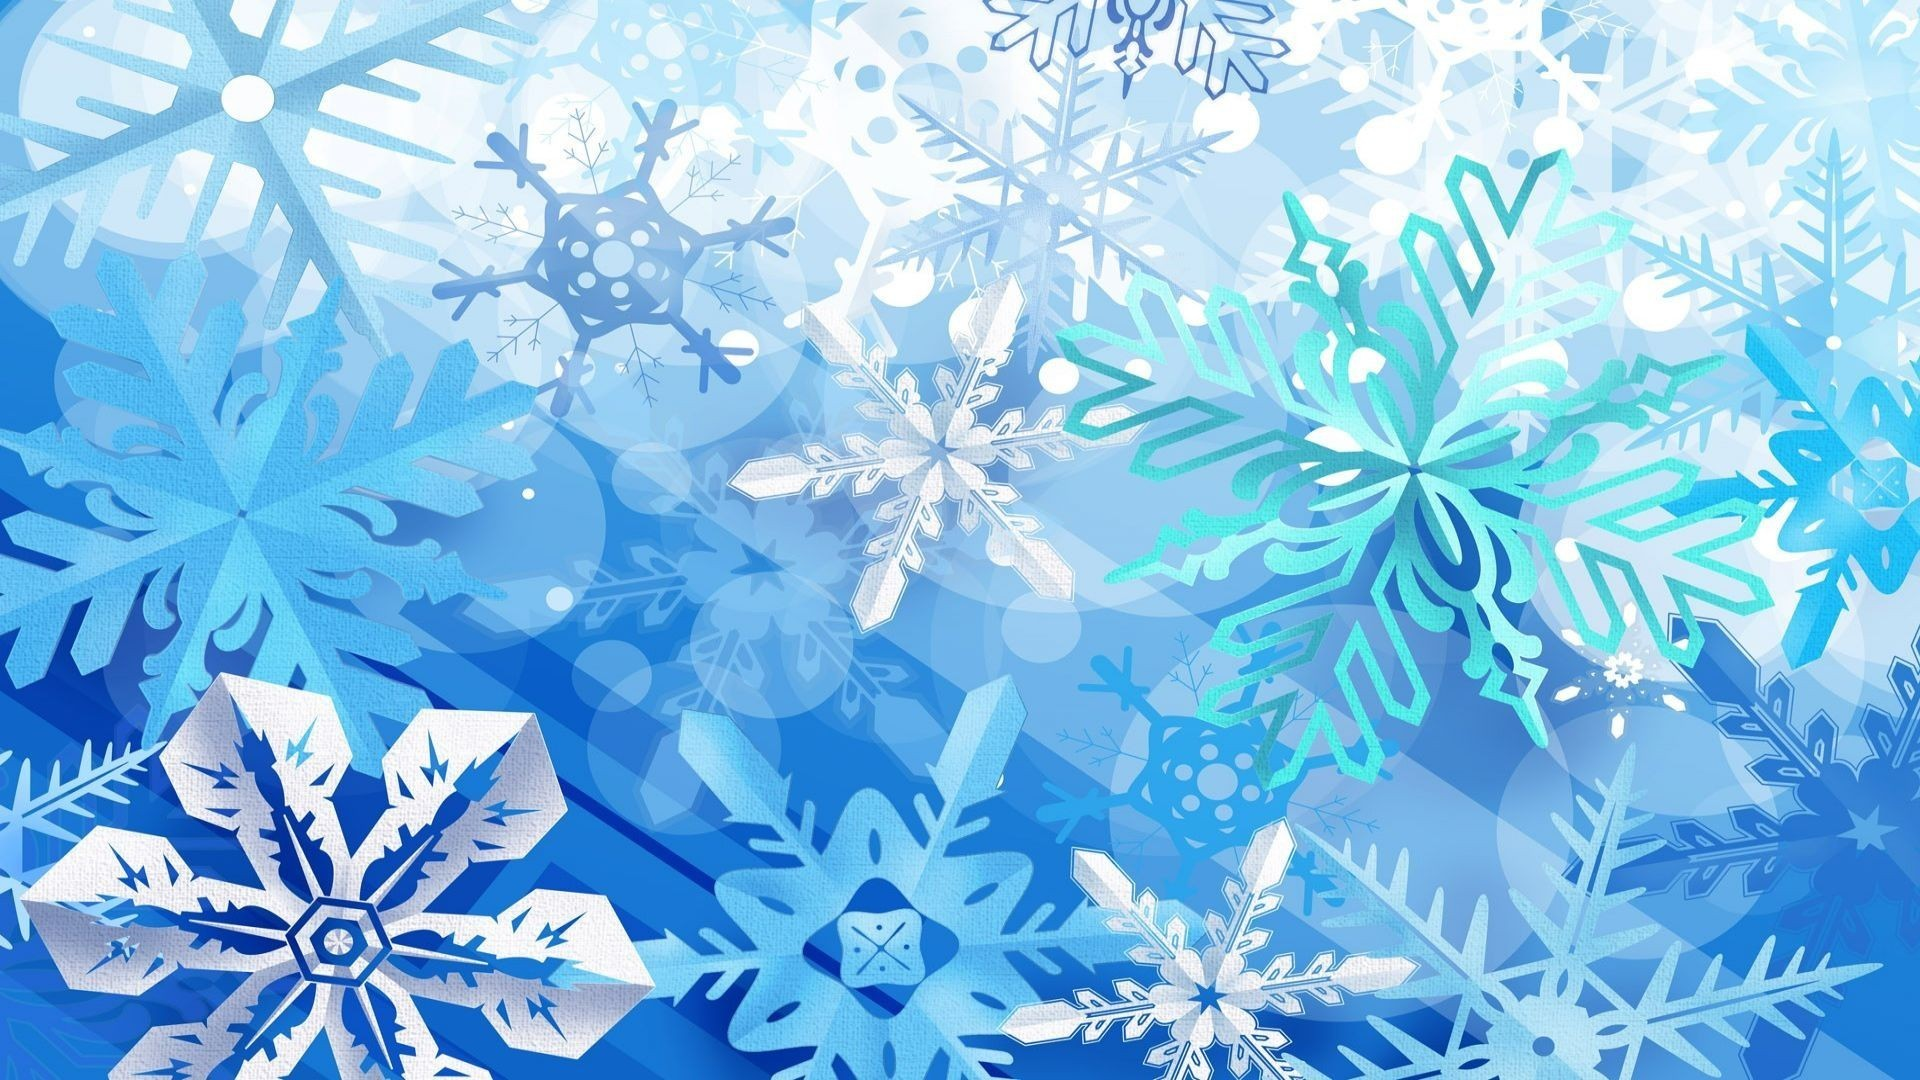 1920x1080 Pinterest · Download. « Christmas Snow High Definition Wallpaper